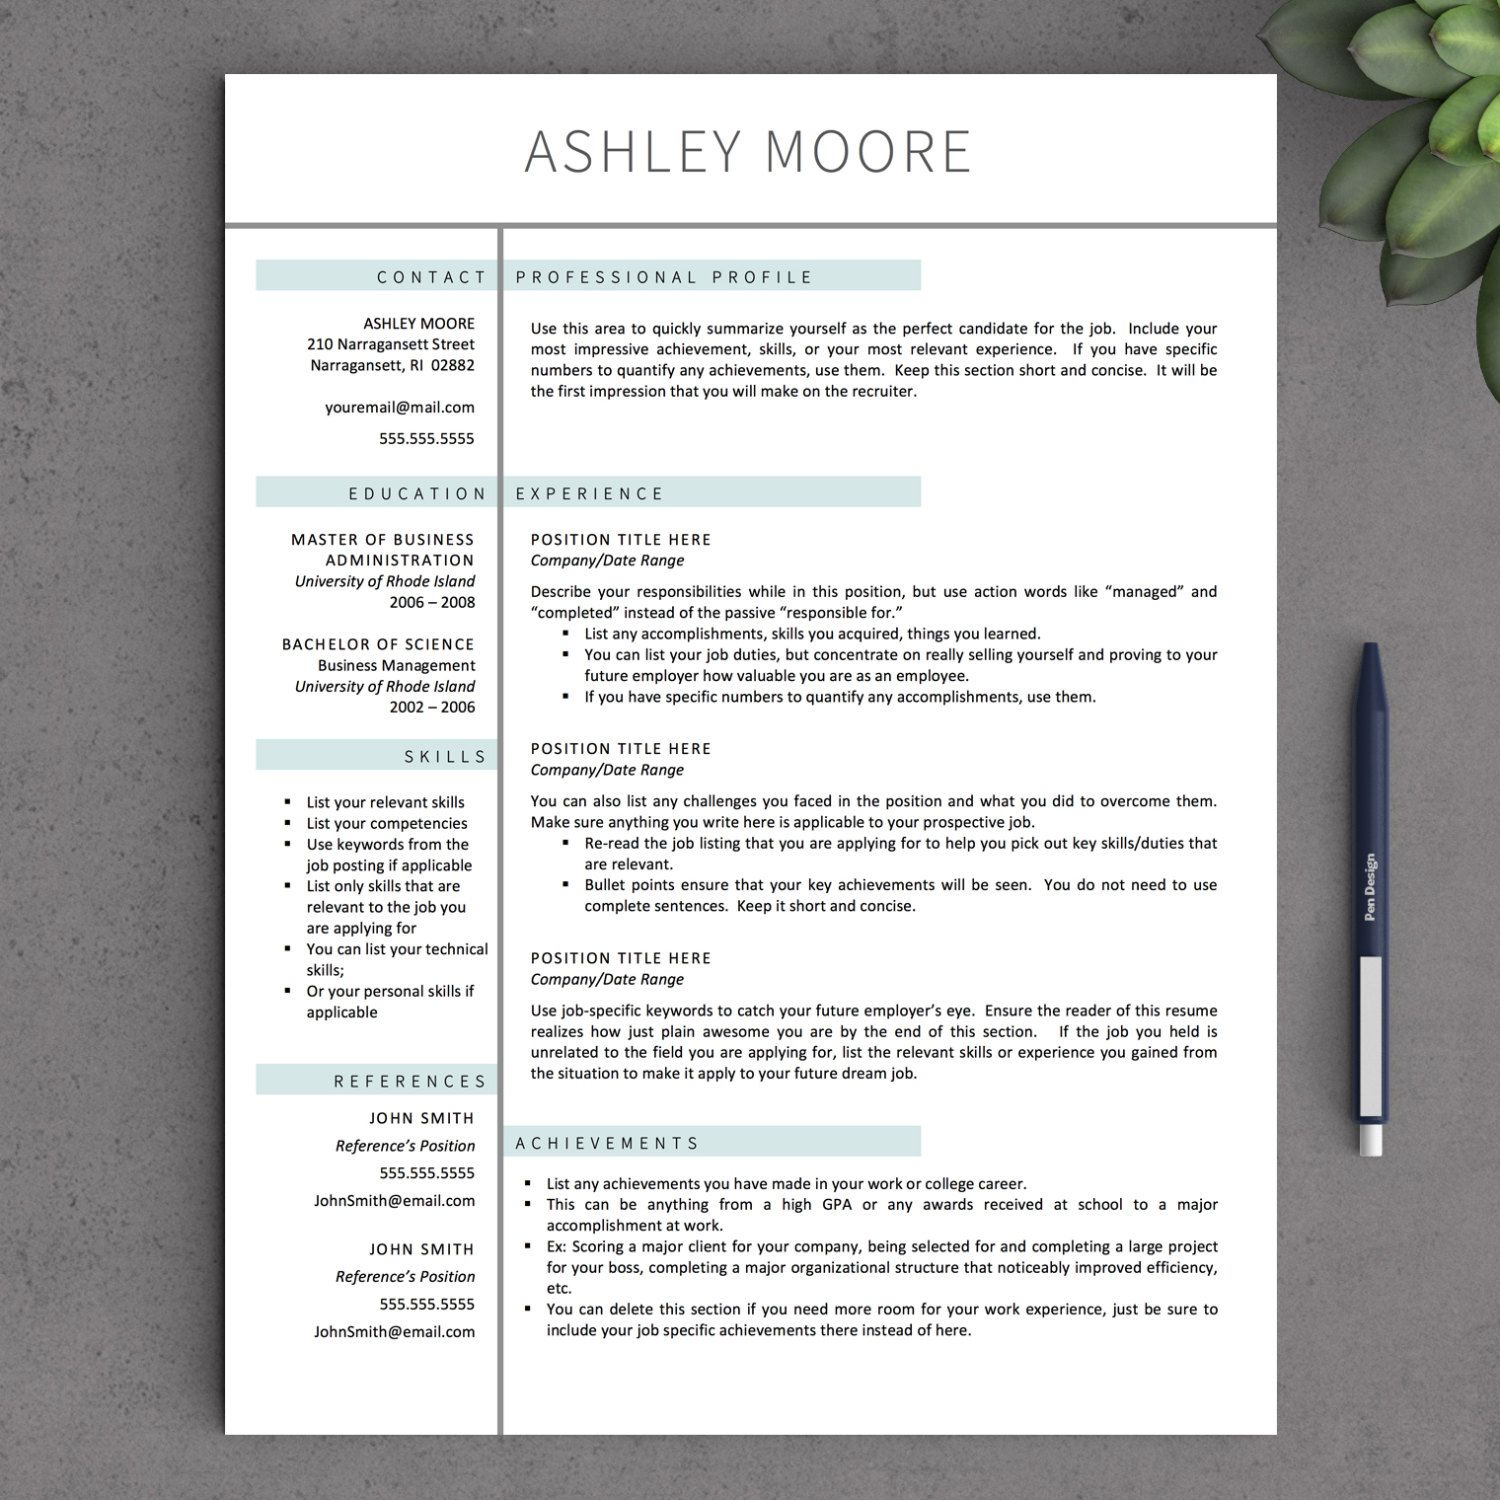 Apple pages resume template download apple pages resume template apple pages resume template download apple pages resume template download apple yelopaper Gallery